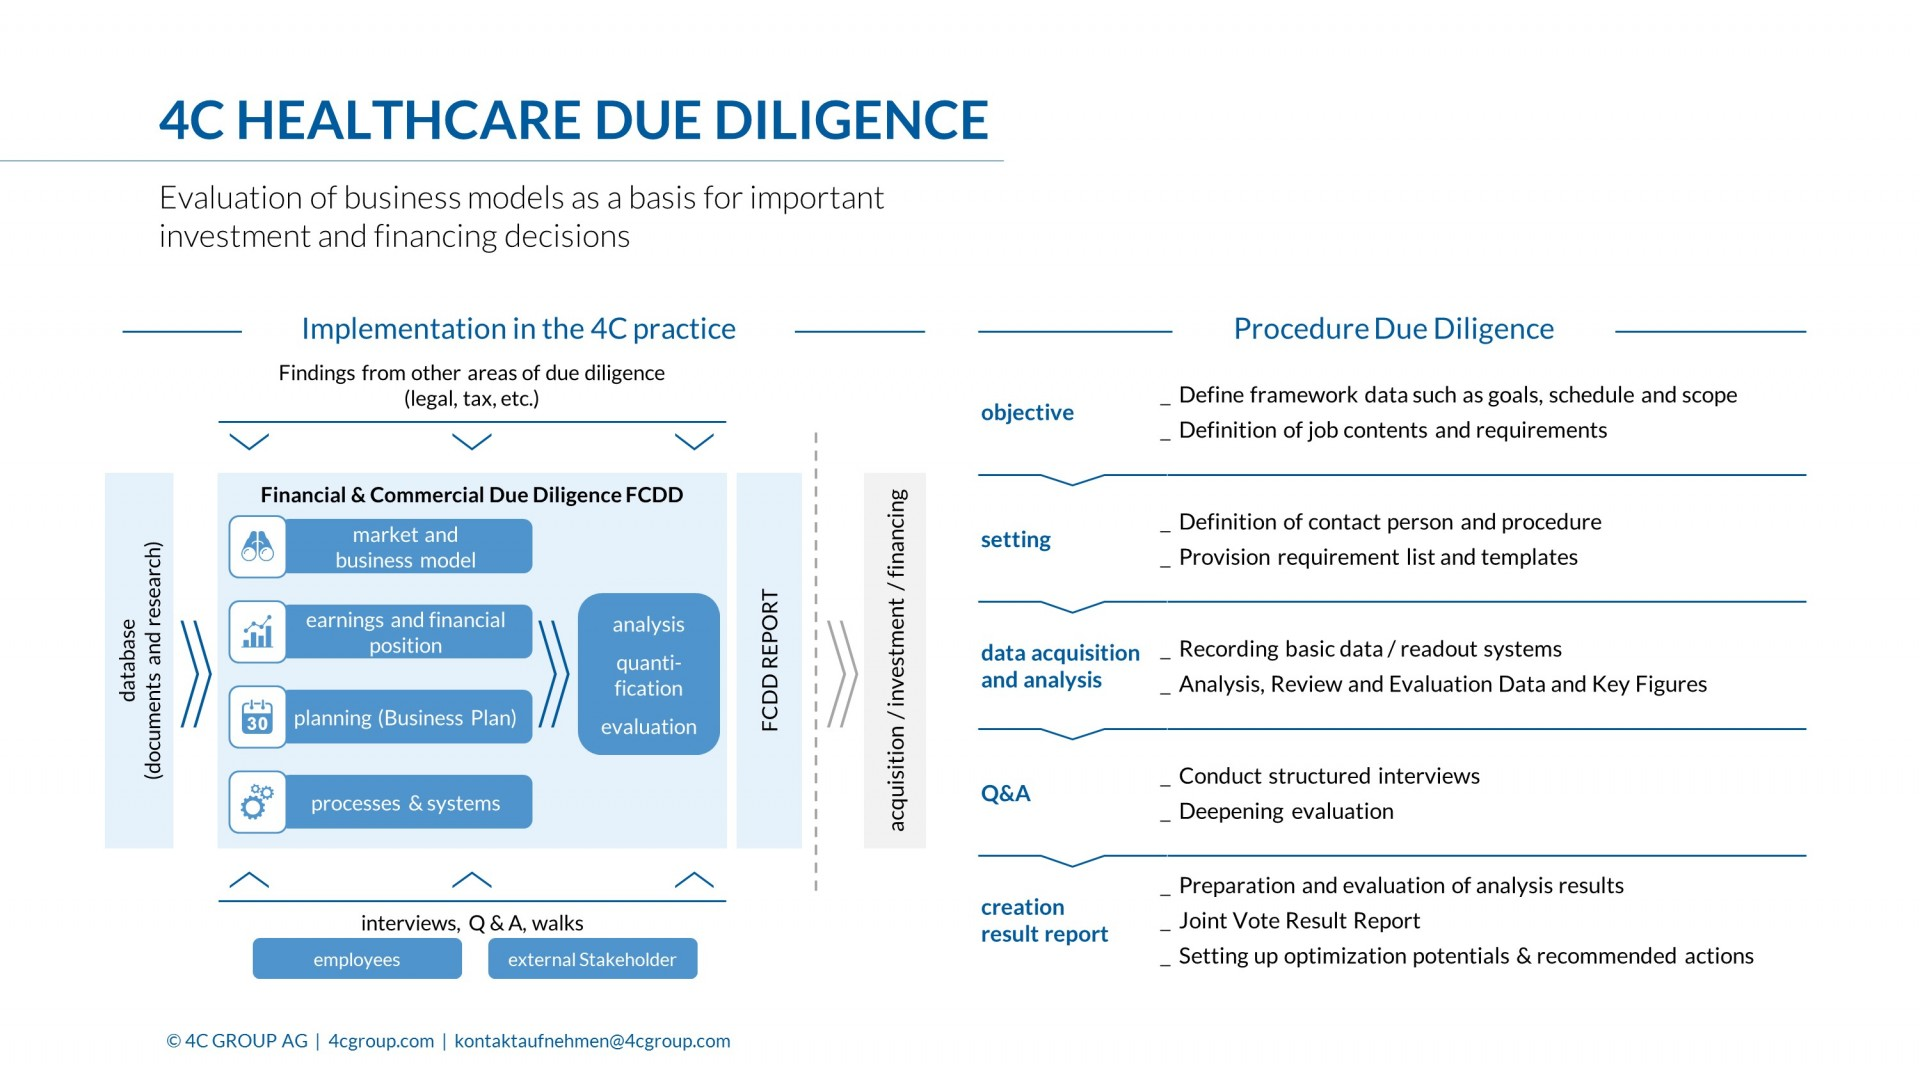 healthcare due diligence - make decisions successfully